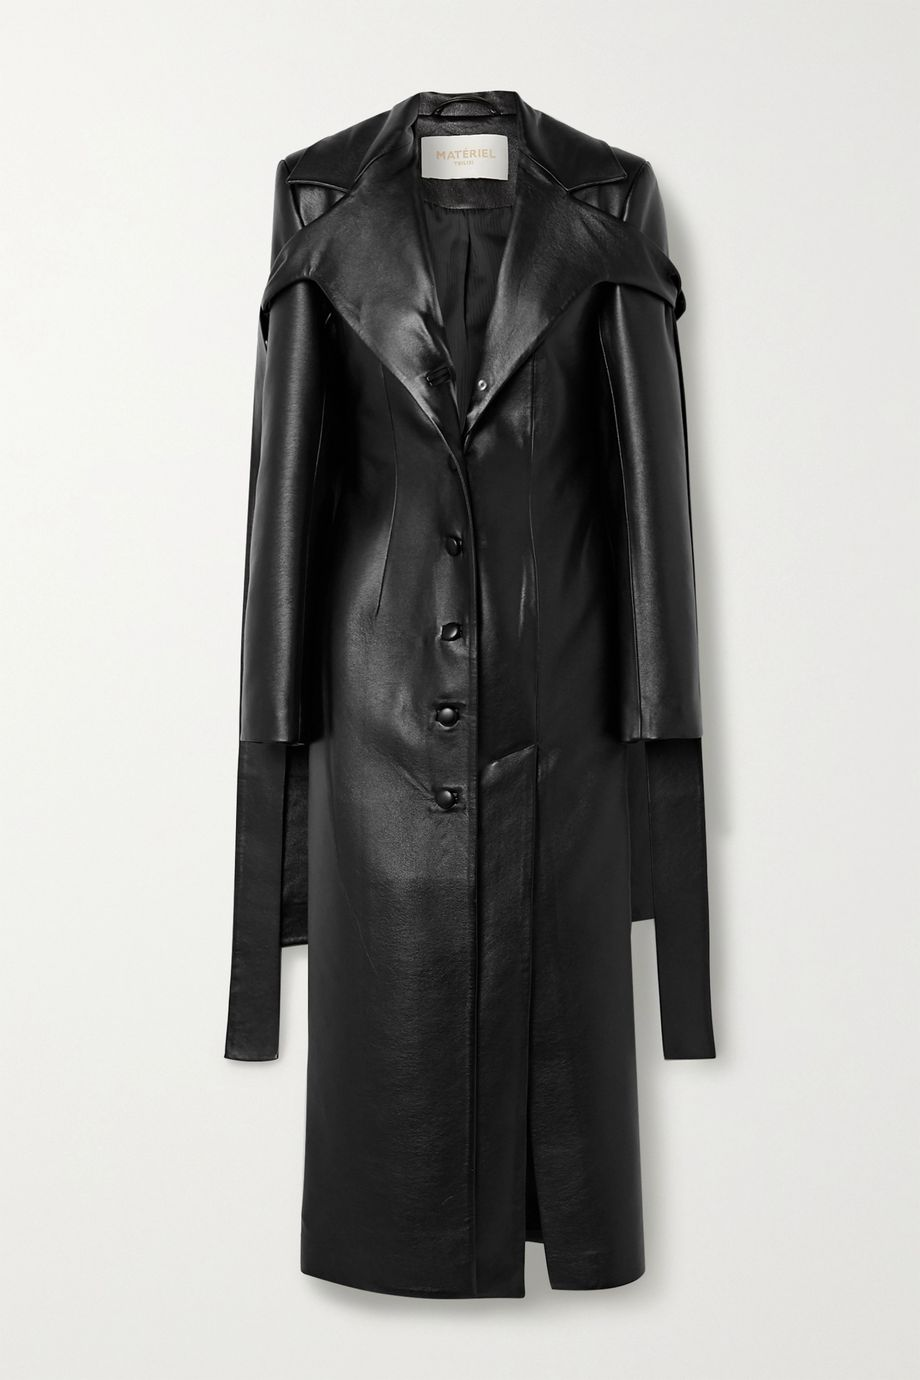 MATERIEL Tie-detailed faux leather coat